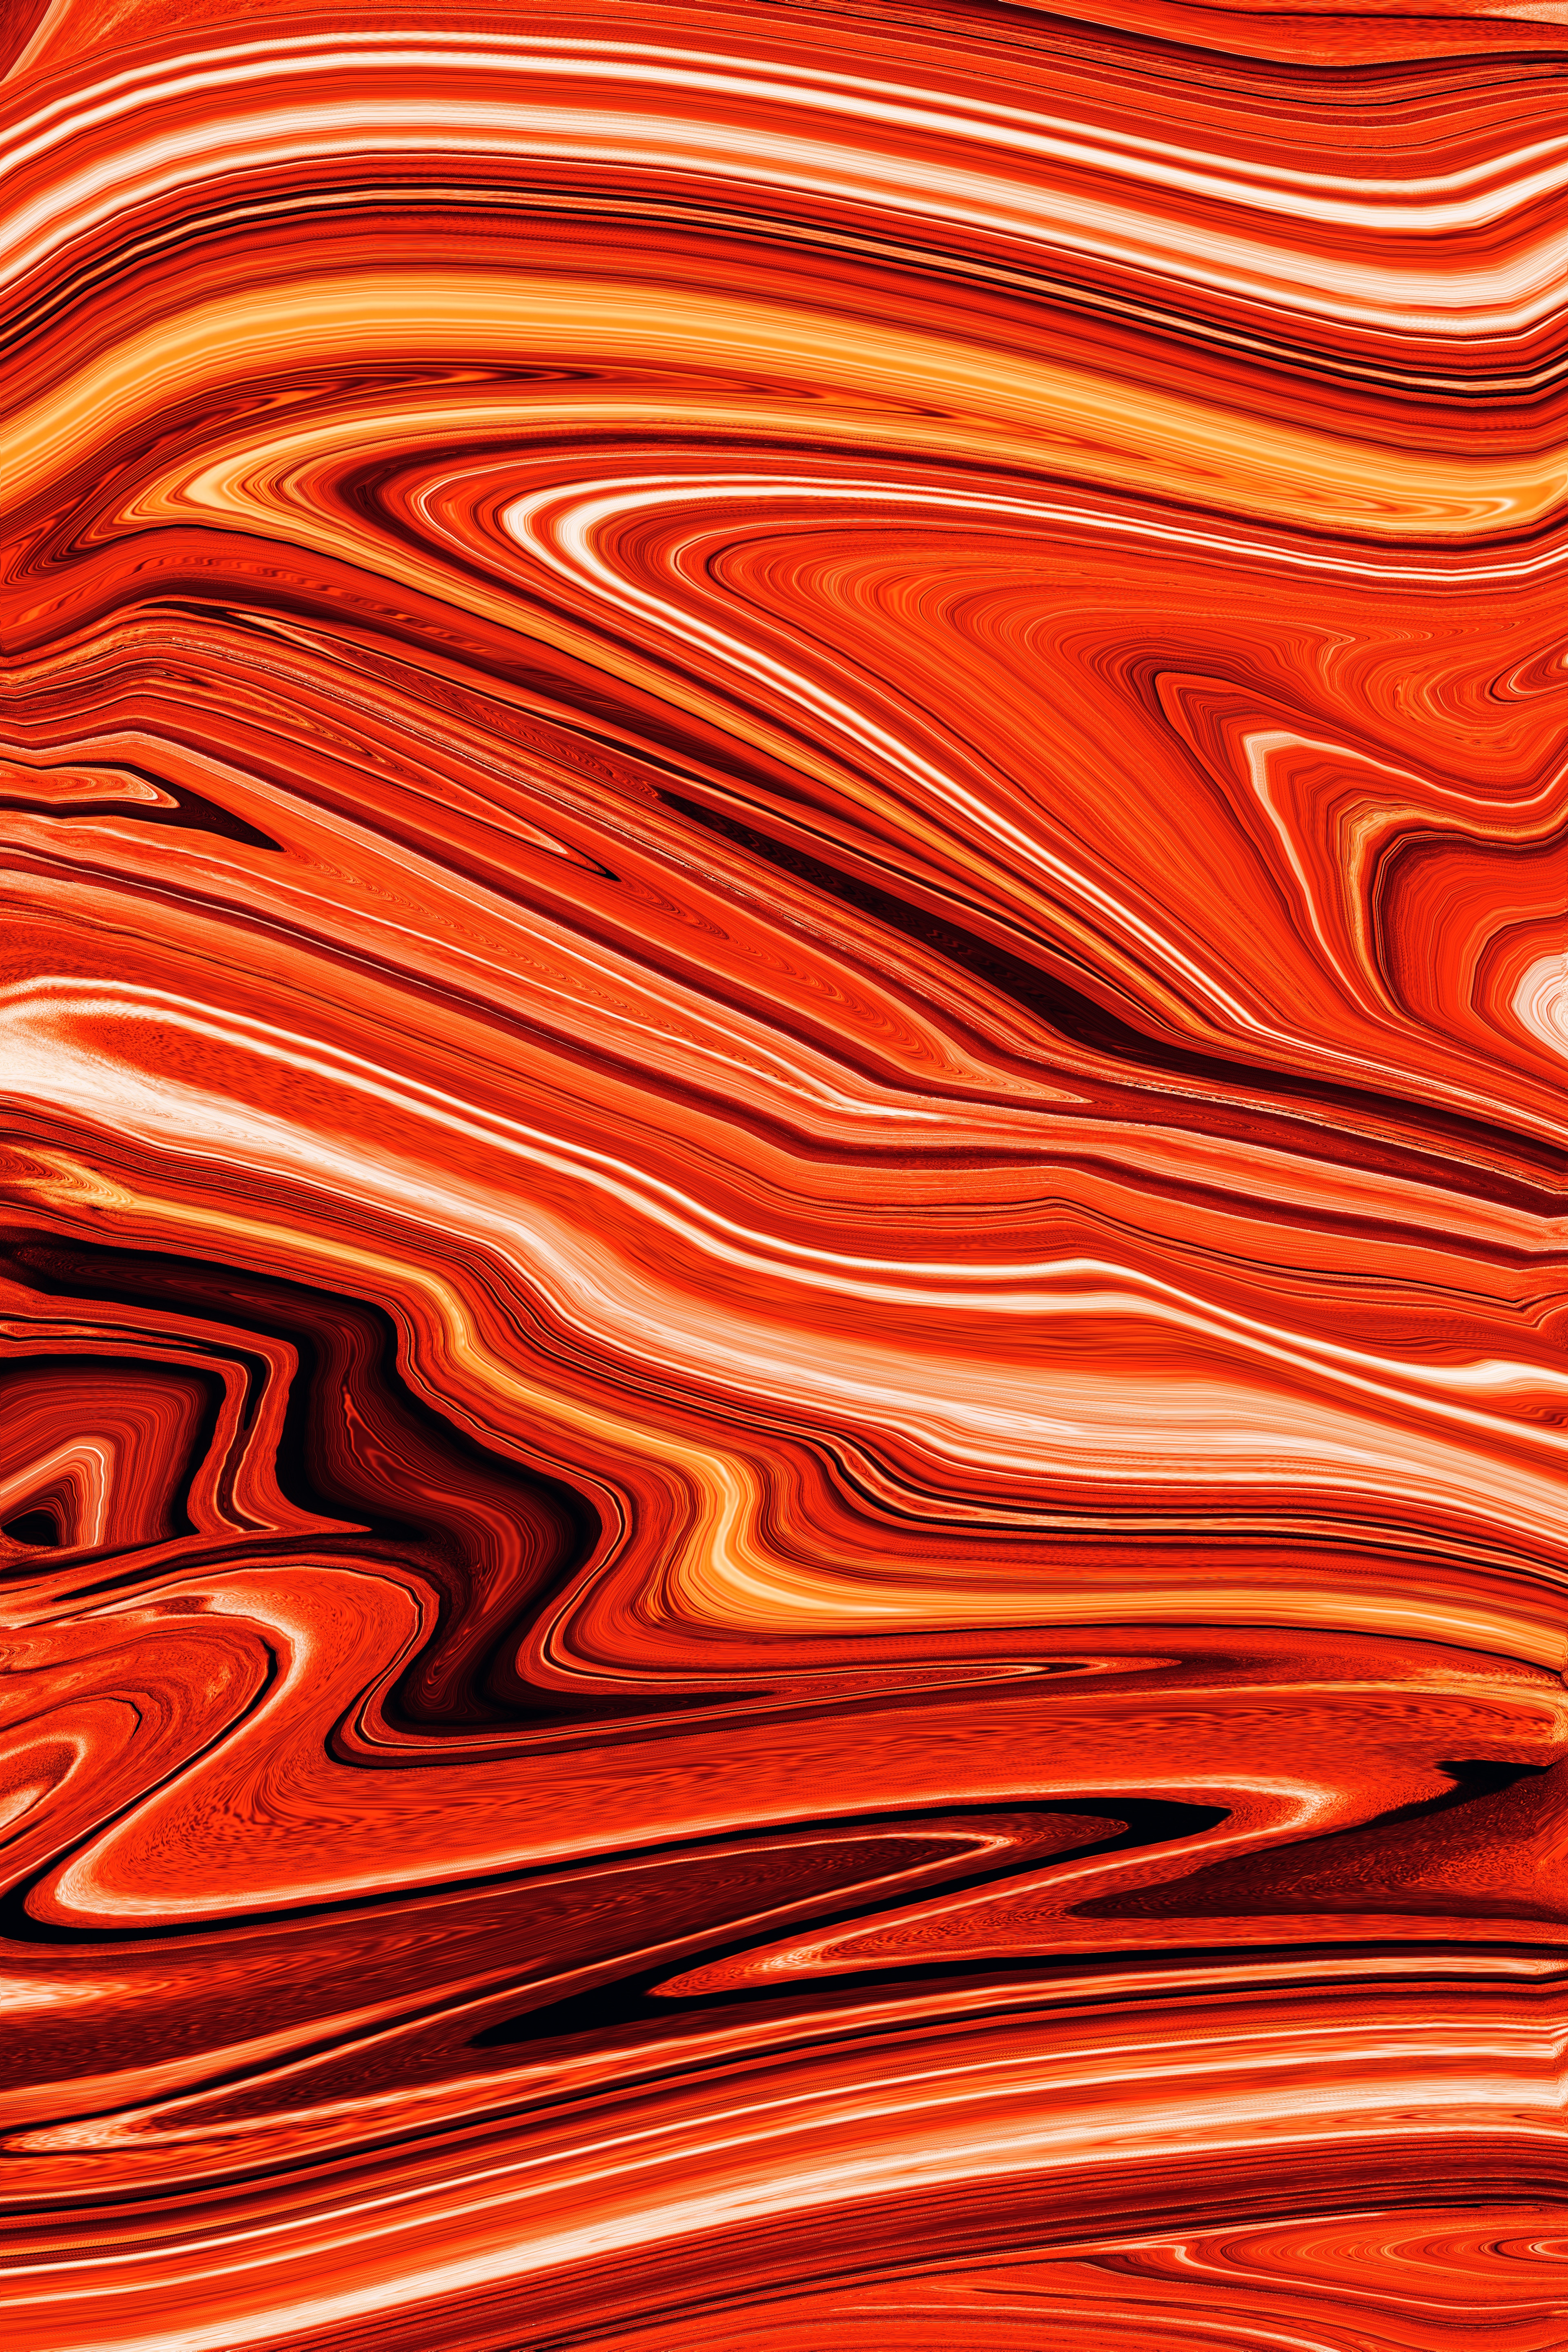 84324 download wallpaper Abstract, Divorces, Paint, Liquid screensavers and pictures for free